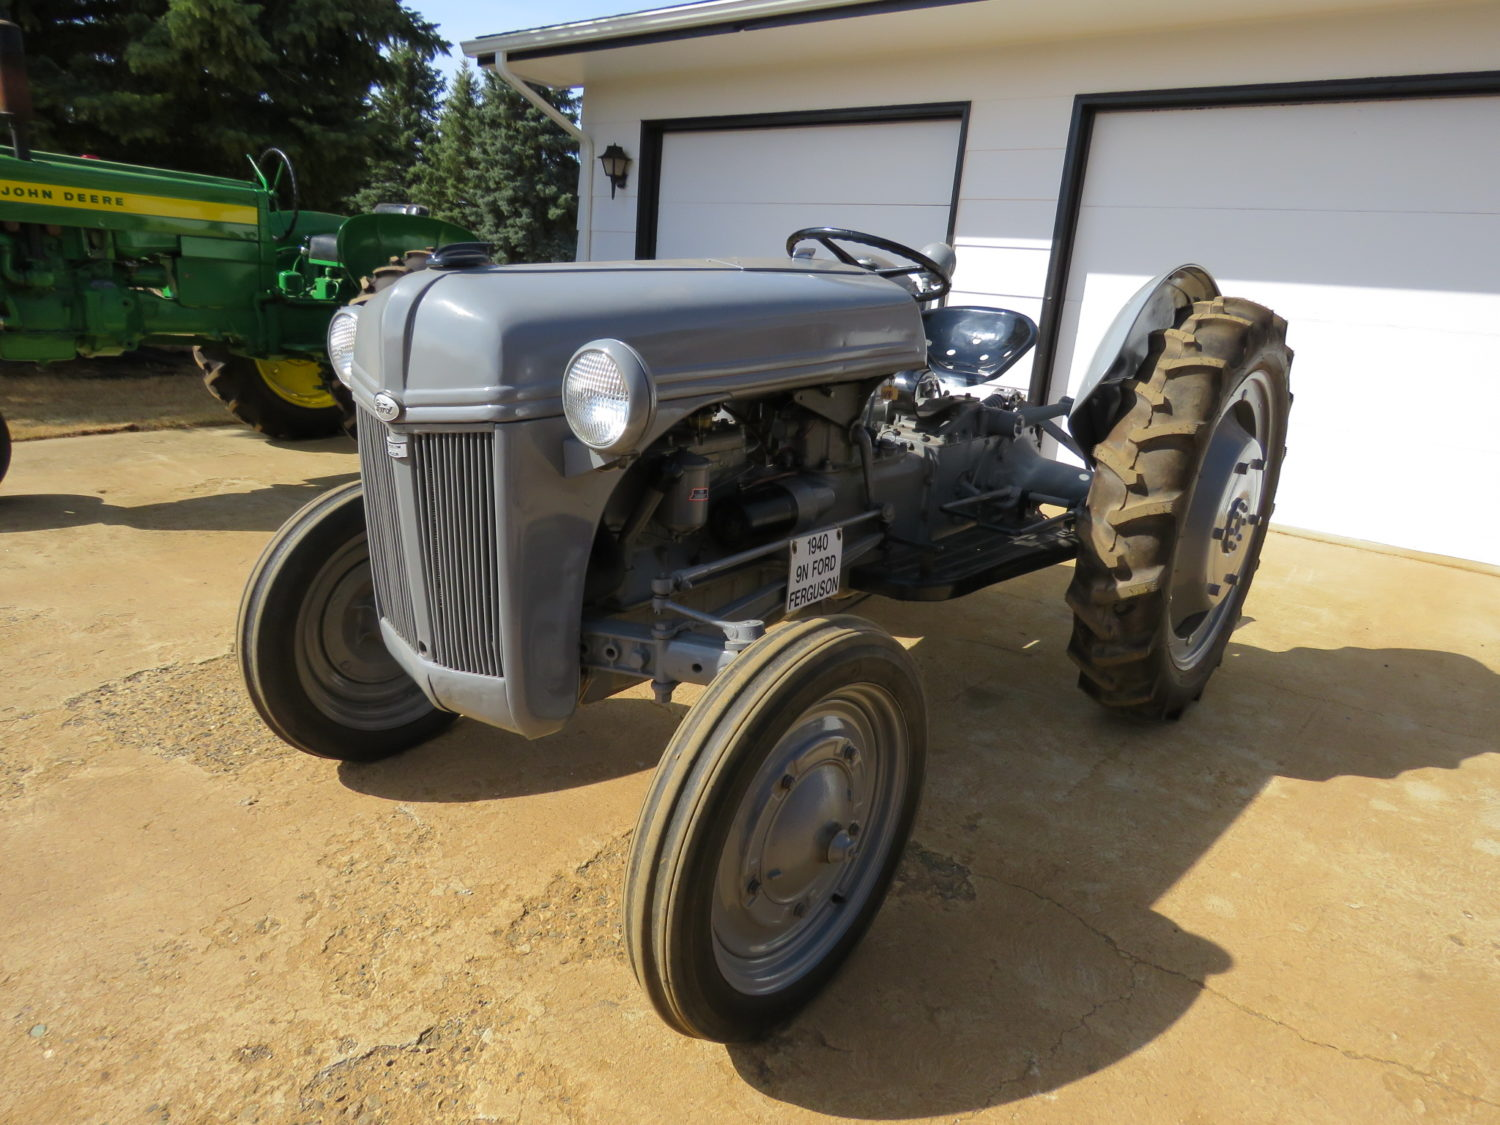 Fabulous Collector Cars, Antique Tractors, Memorabilia & More! The Krinke Collection - image 13